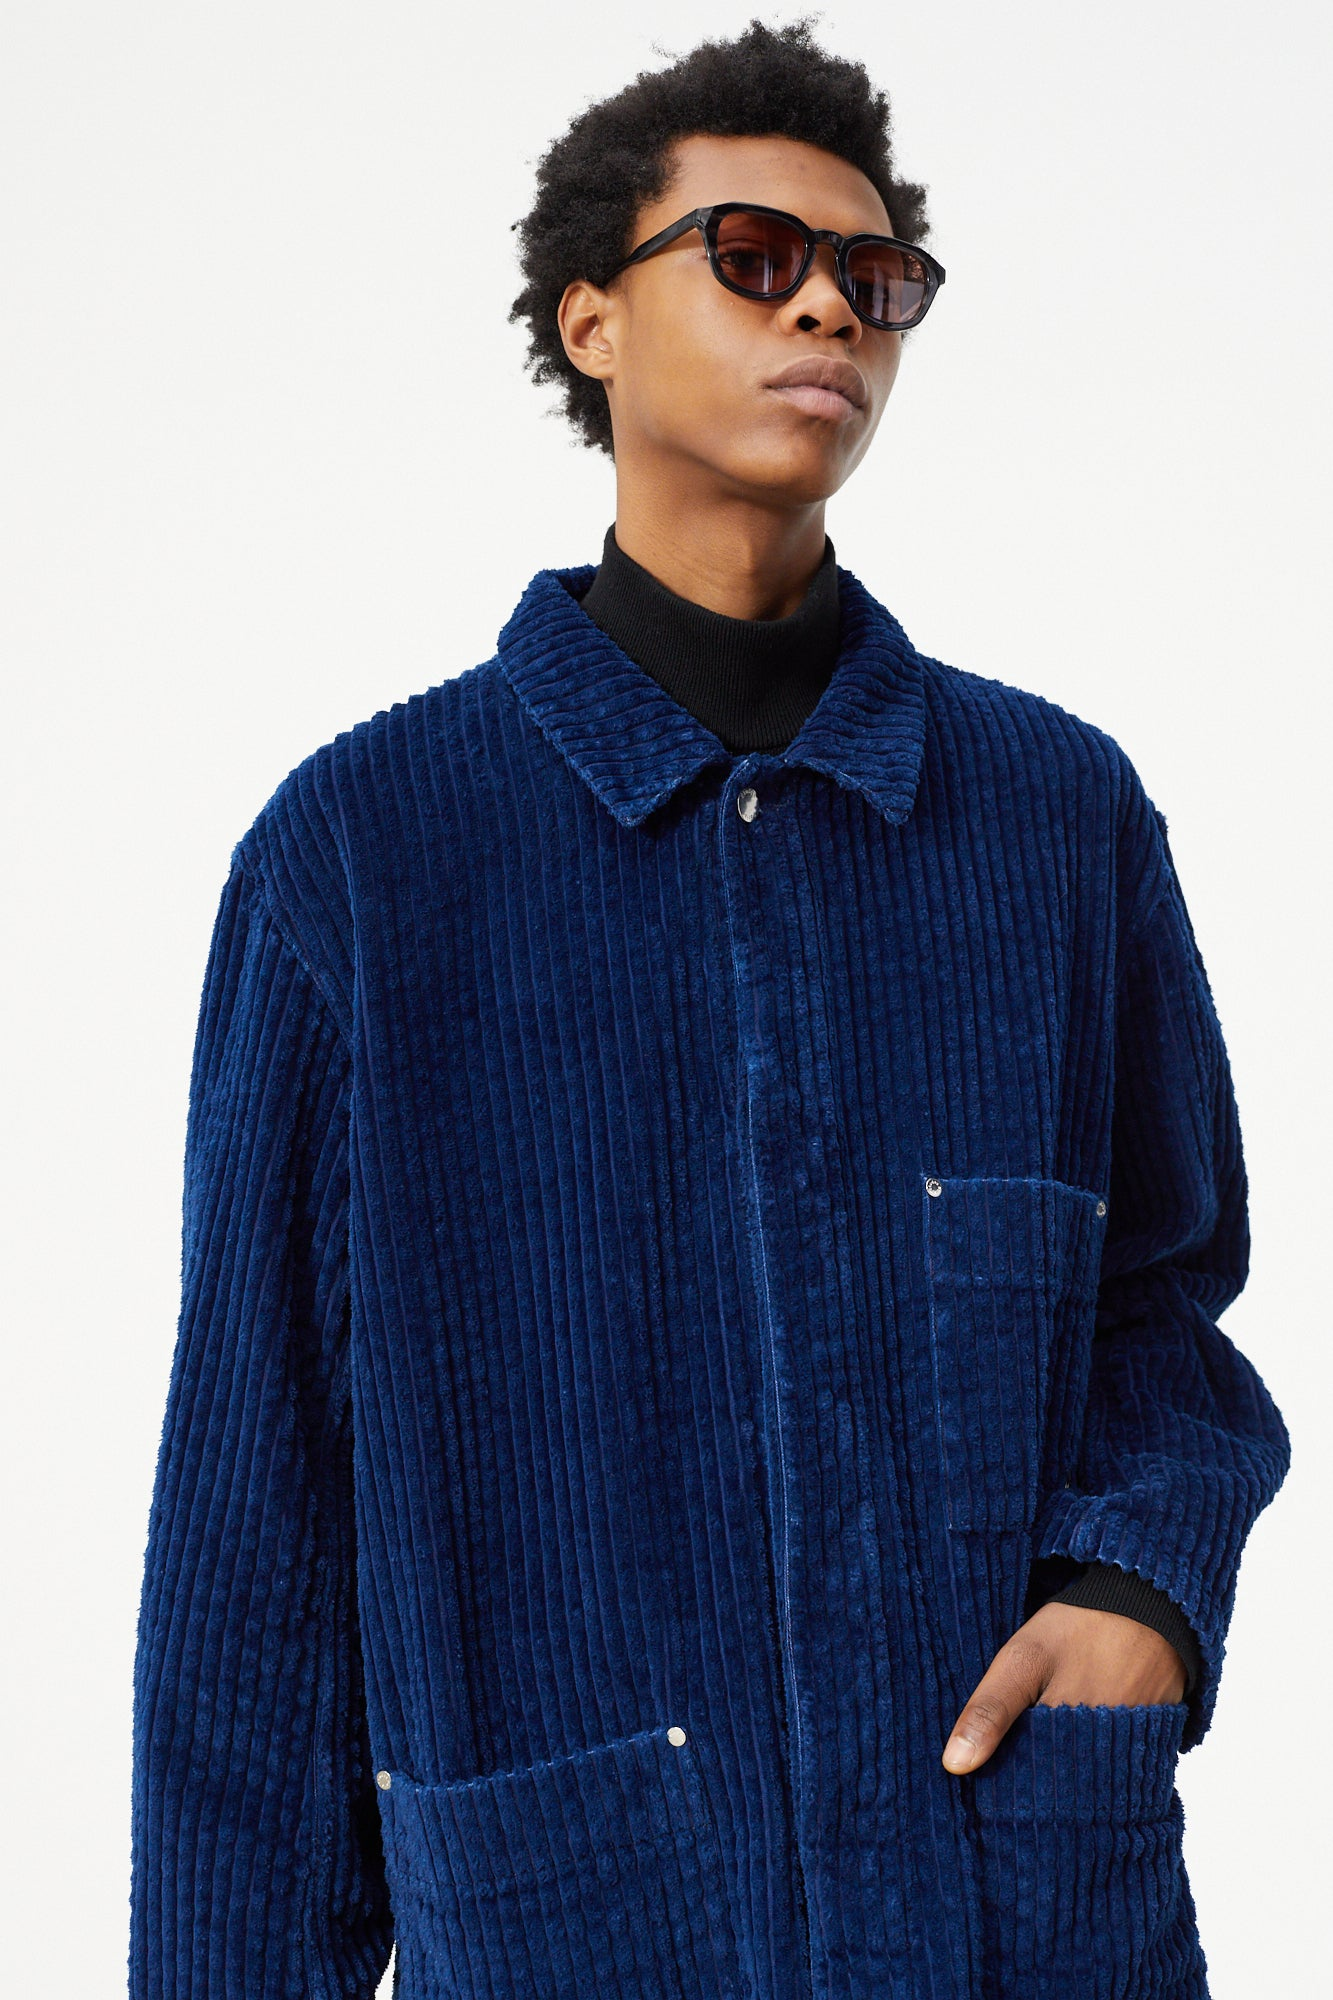 Études Excursion Large Corduroy Indigo Jacket 4